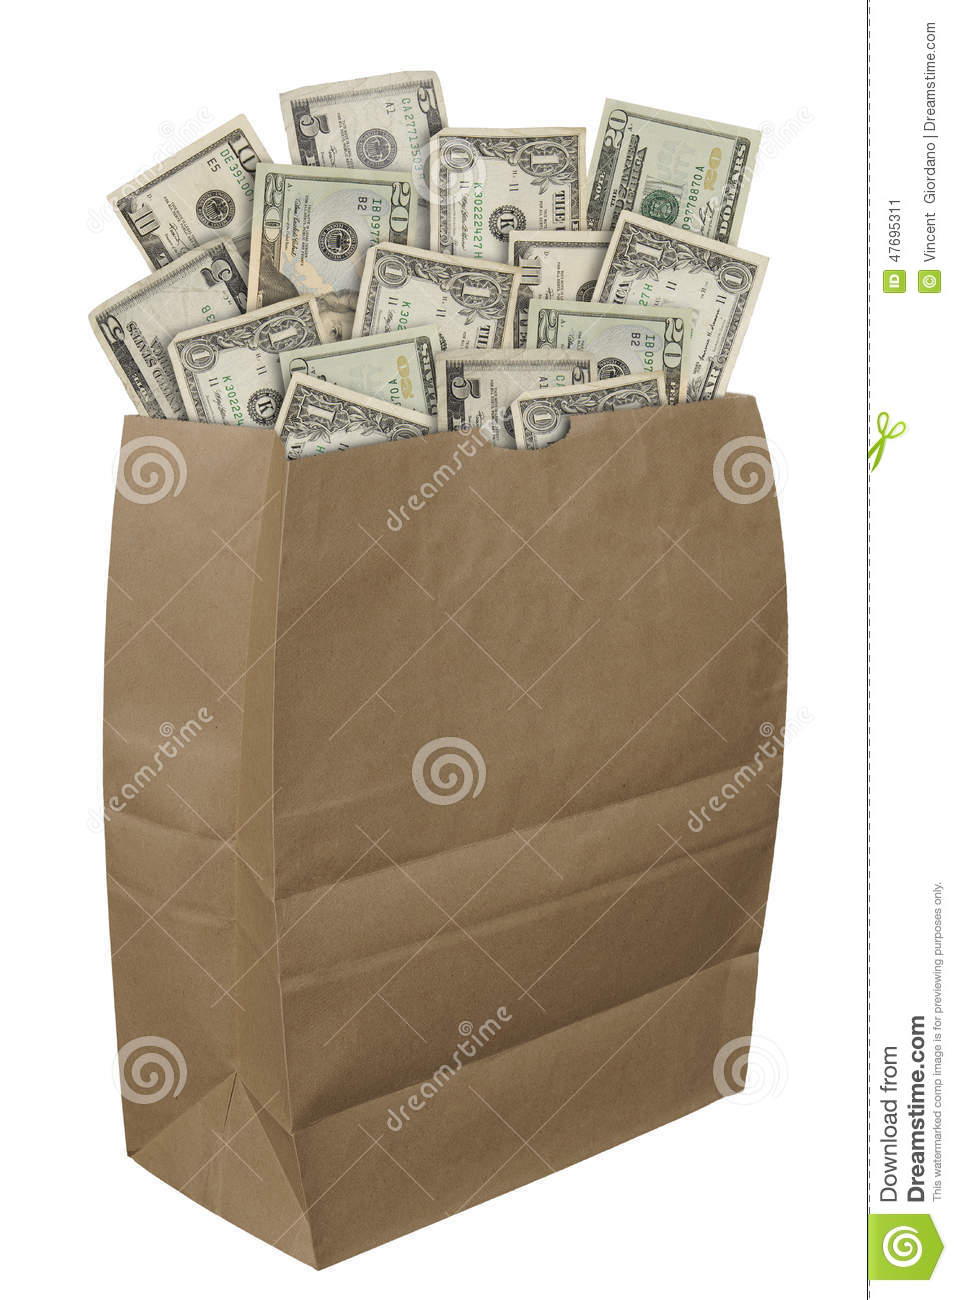 Paper Bag Of Money Stock Photo Image 47695311